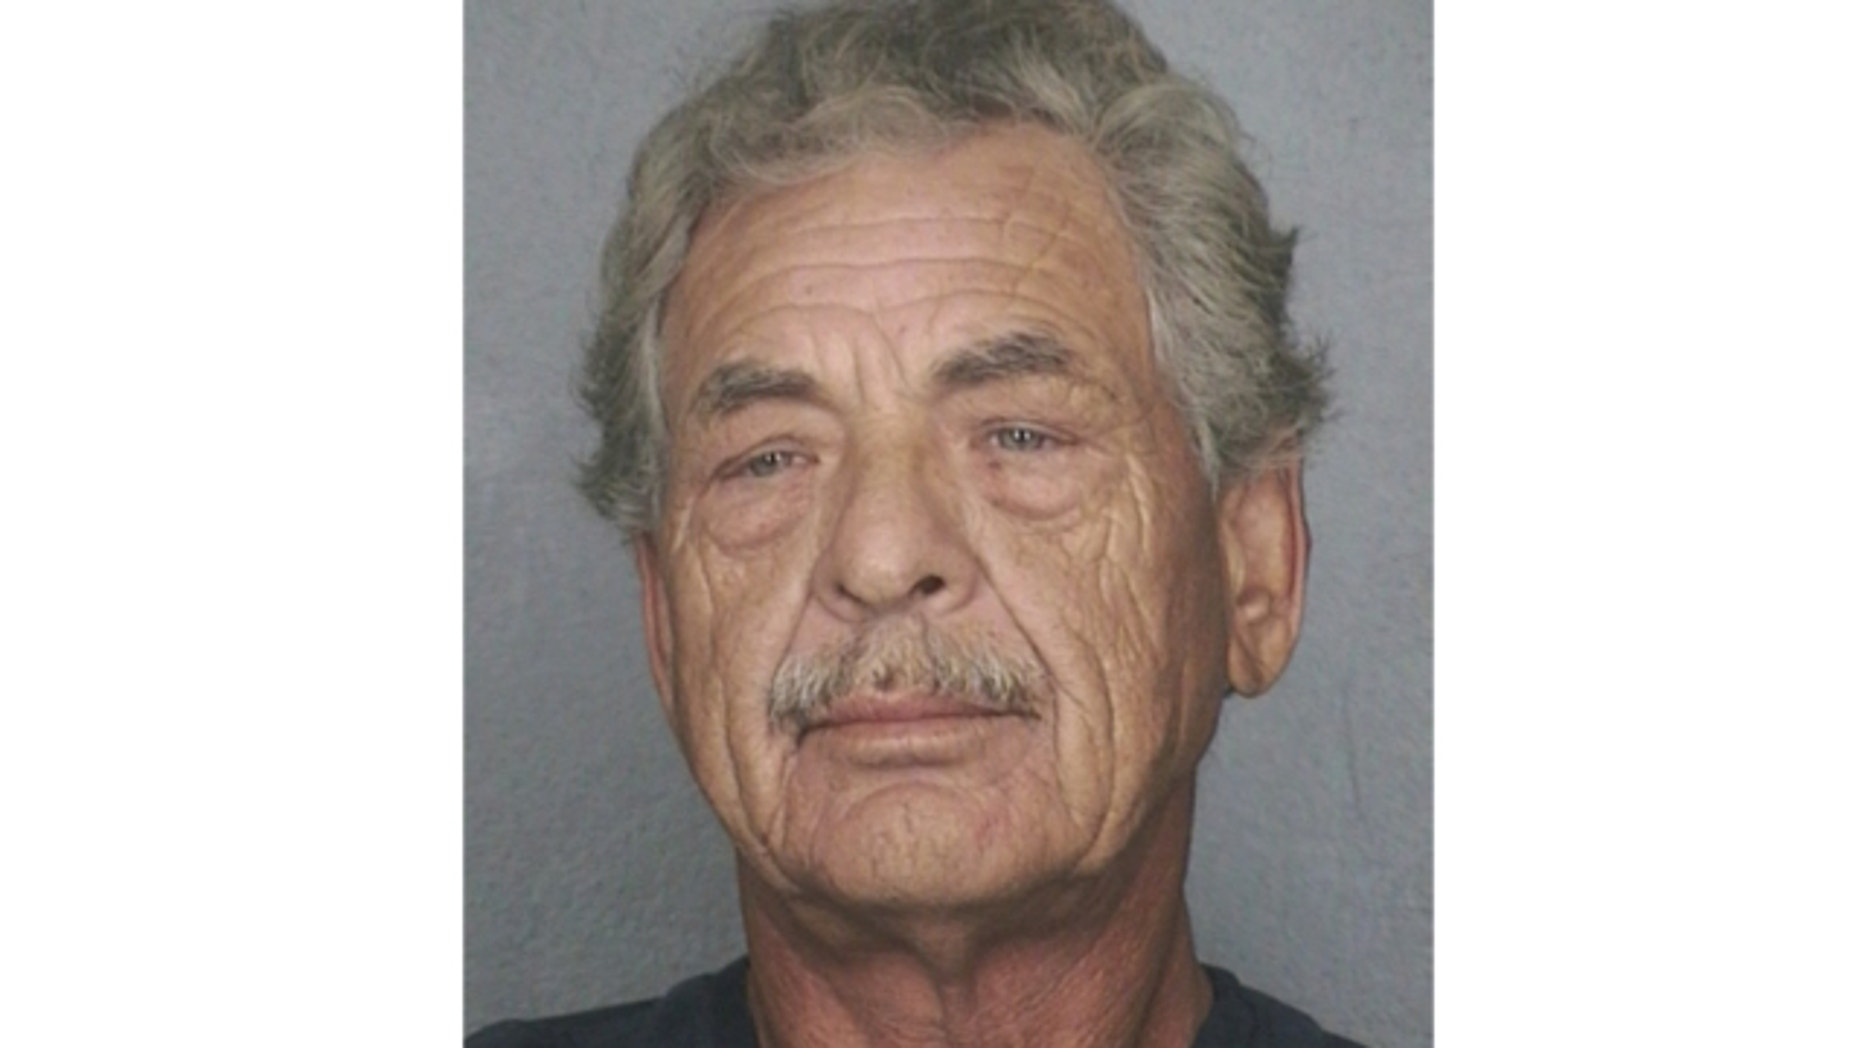 March 13, 2014: James Robert Jones, 59, of Deerfield Beach, Fla., was arrested when he showed up for work in Pompano Beach, the U.S. Marshals Service said.